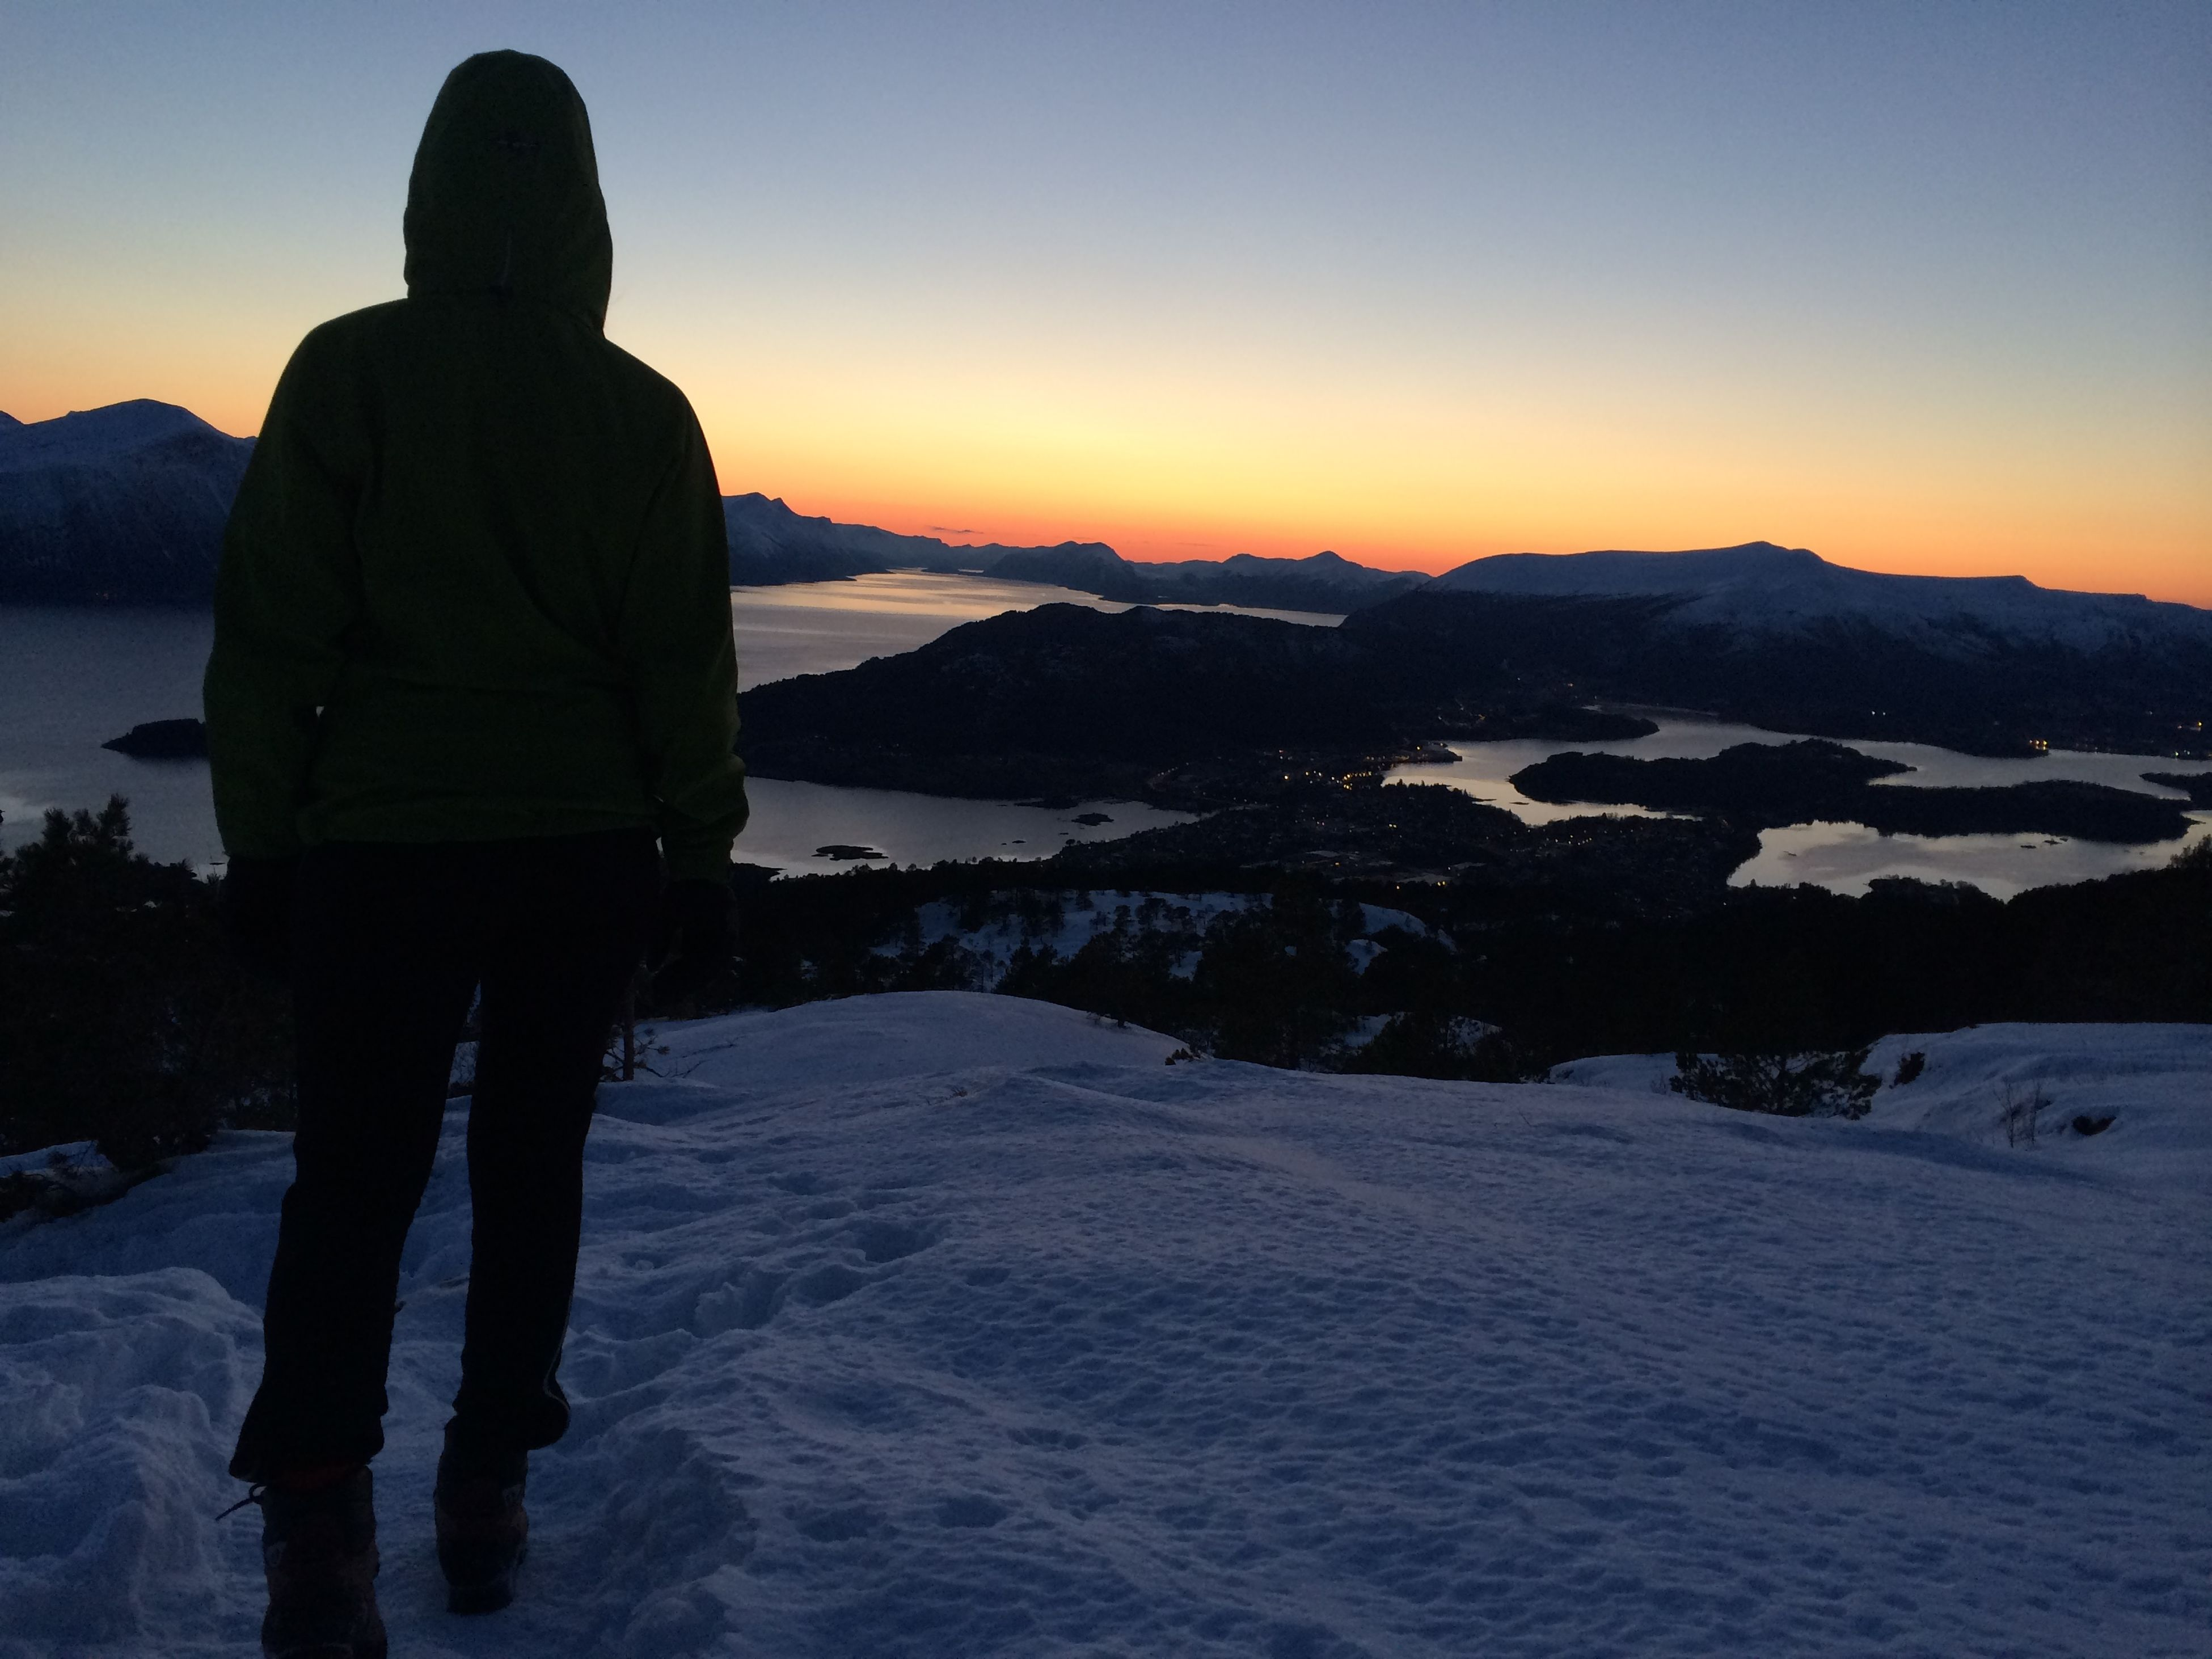 snow, sunset, winter, cold temperature, lifestyles, silhouette, standing, tranquil scene, leisure activity, scenics, tranquility, beauty in nature, mountain, season, sky, nature, full length, rear view